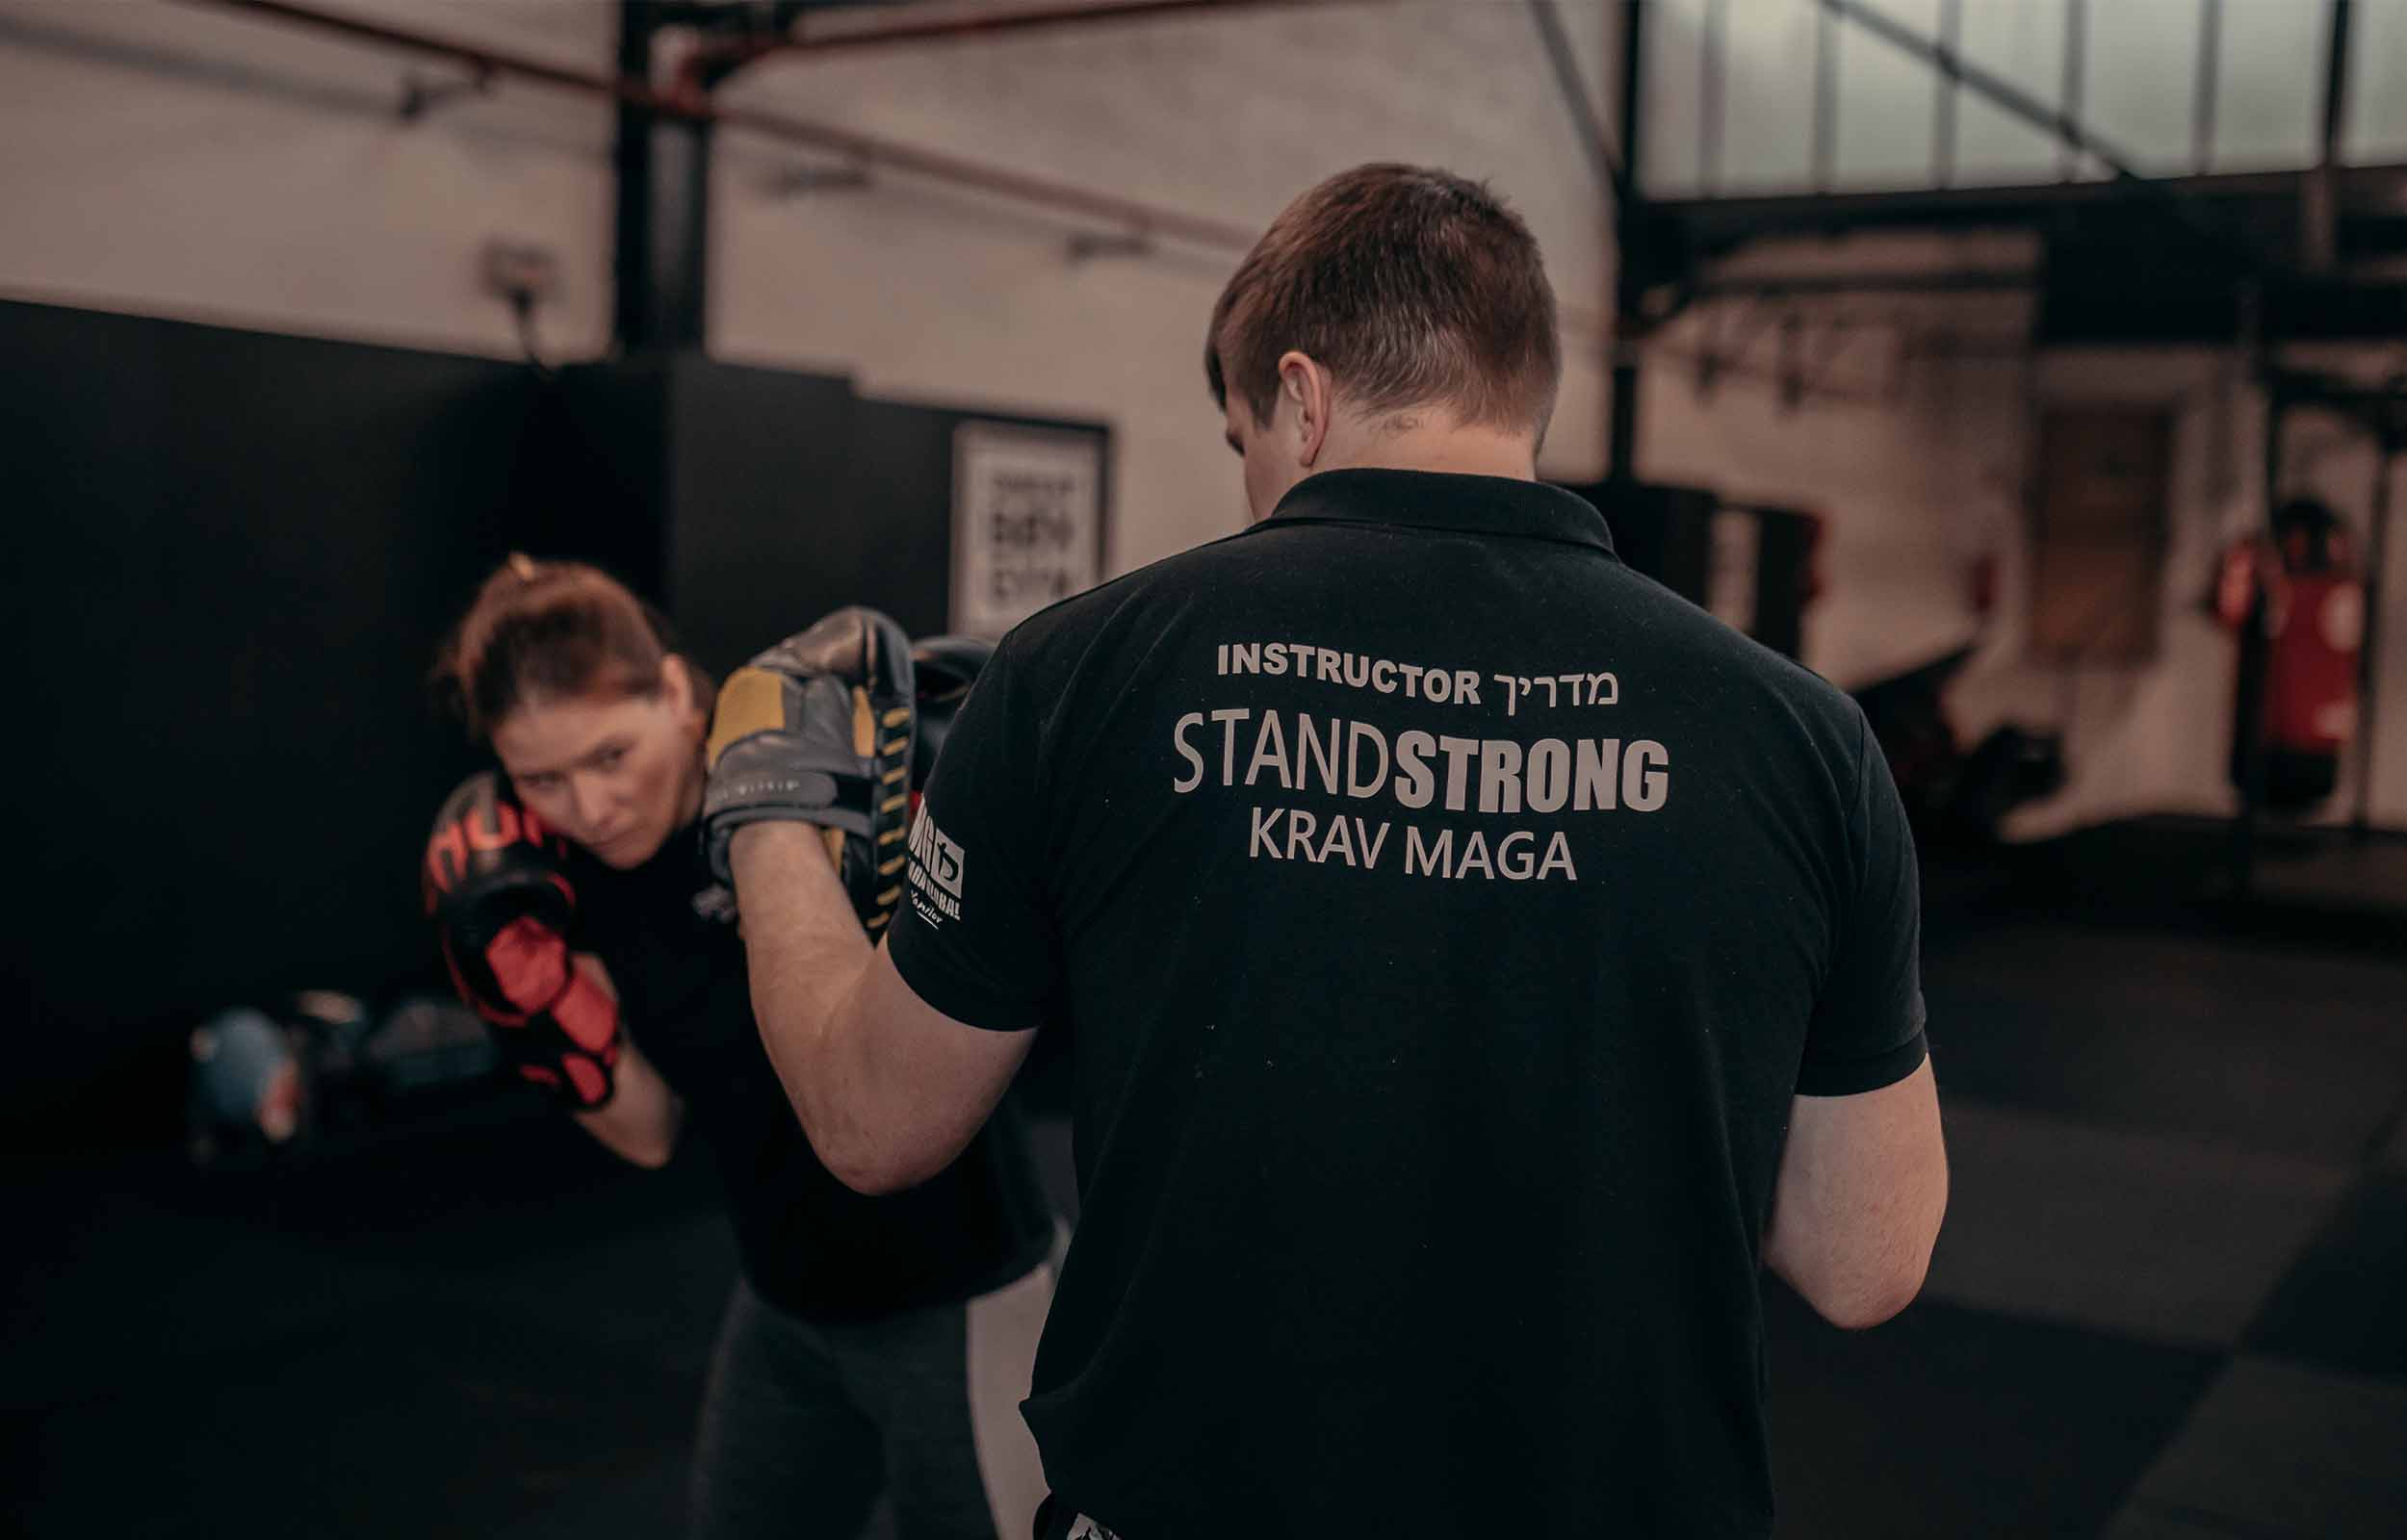 StandStrong Academy